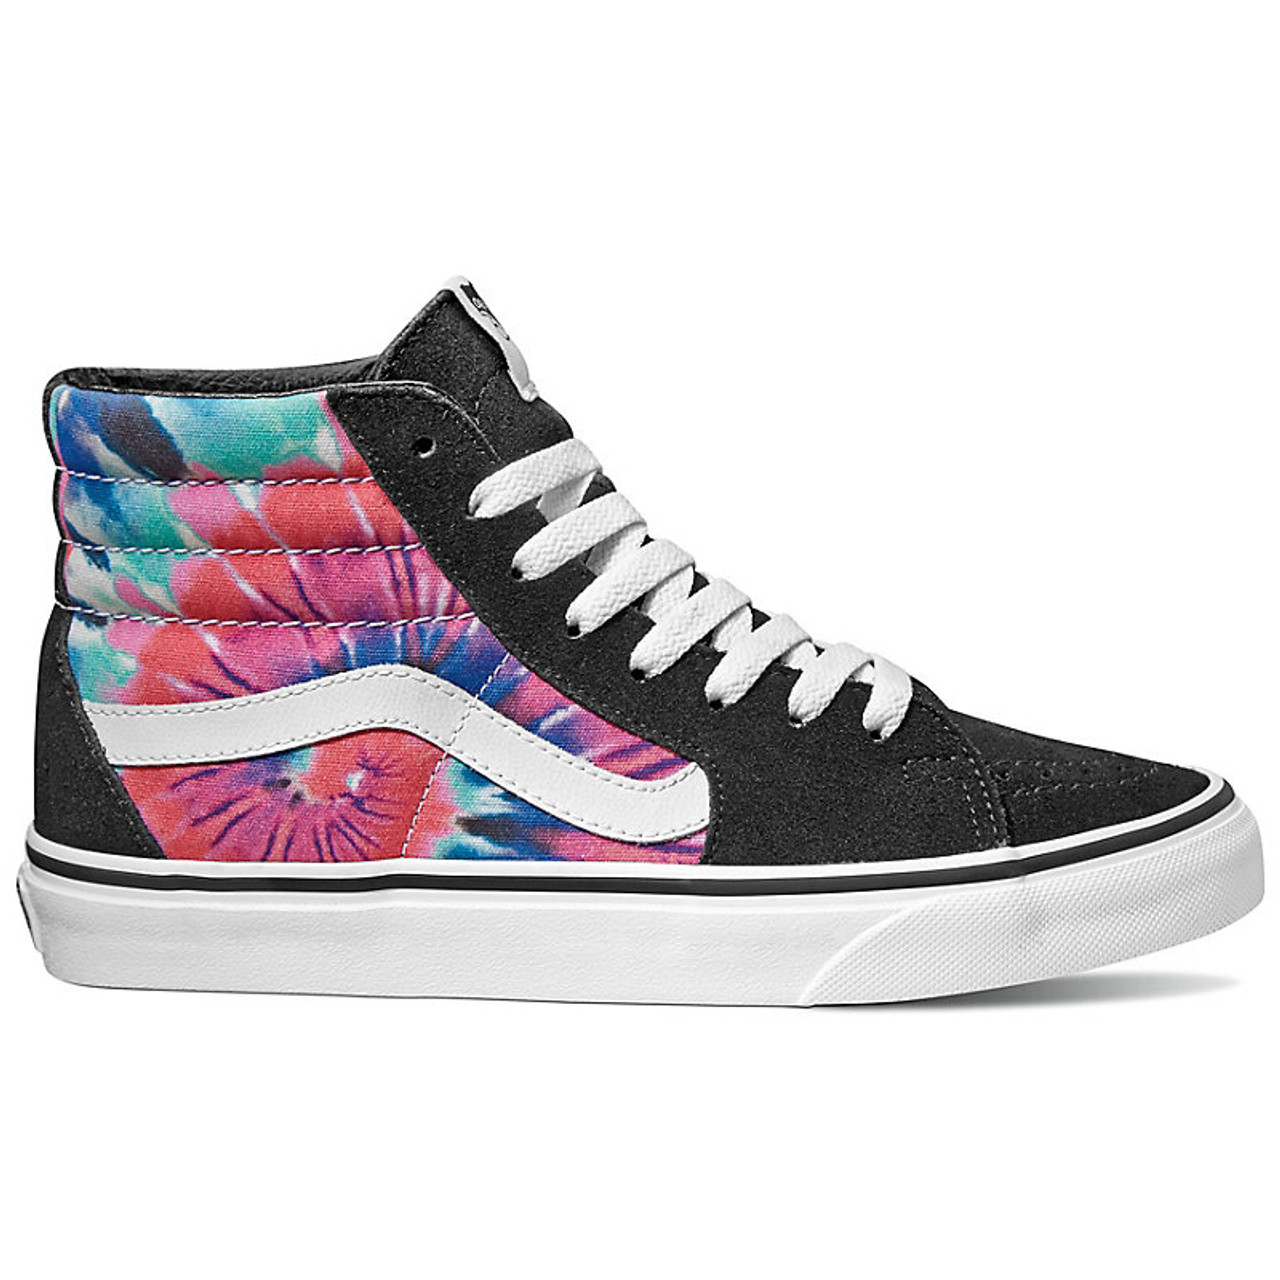 e78196c8fee533 Vans Shoes - Sk8-Hi - Tie Dye Multi True White - Surf and Dirt